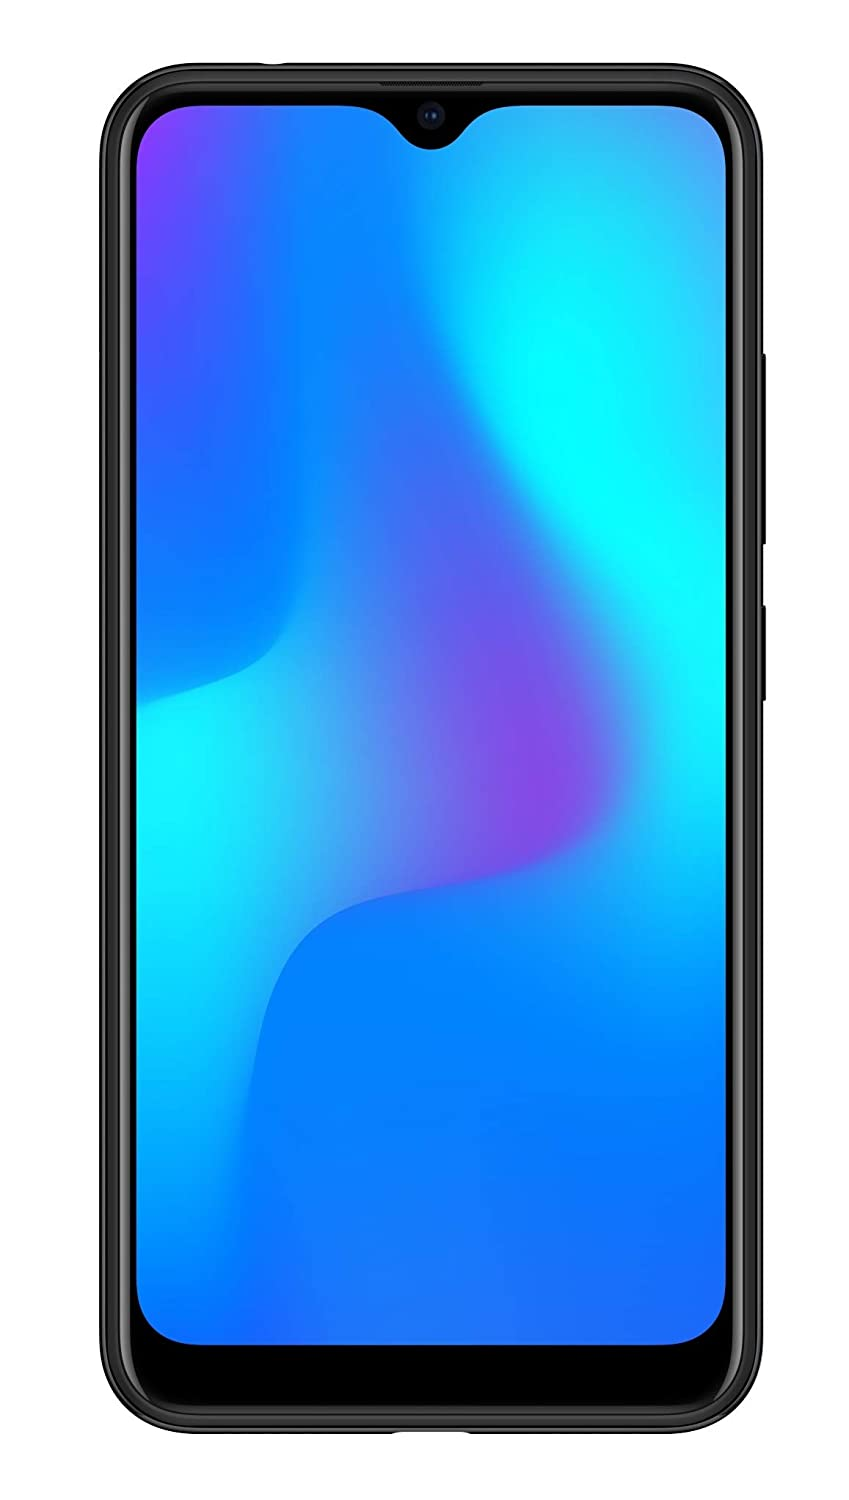 7. Panasonic Eluga I8 (3GB RAM, 32GB Storage) (Charcoal Black)